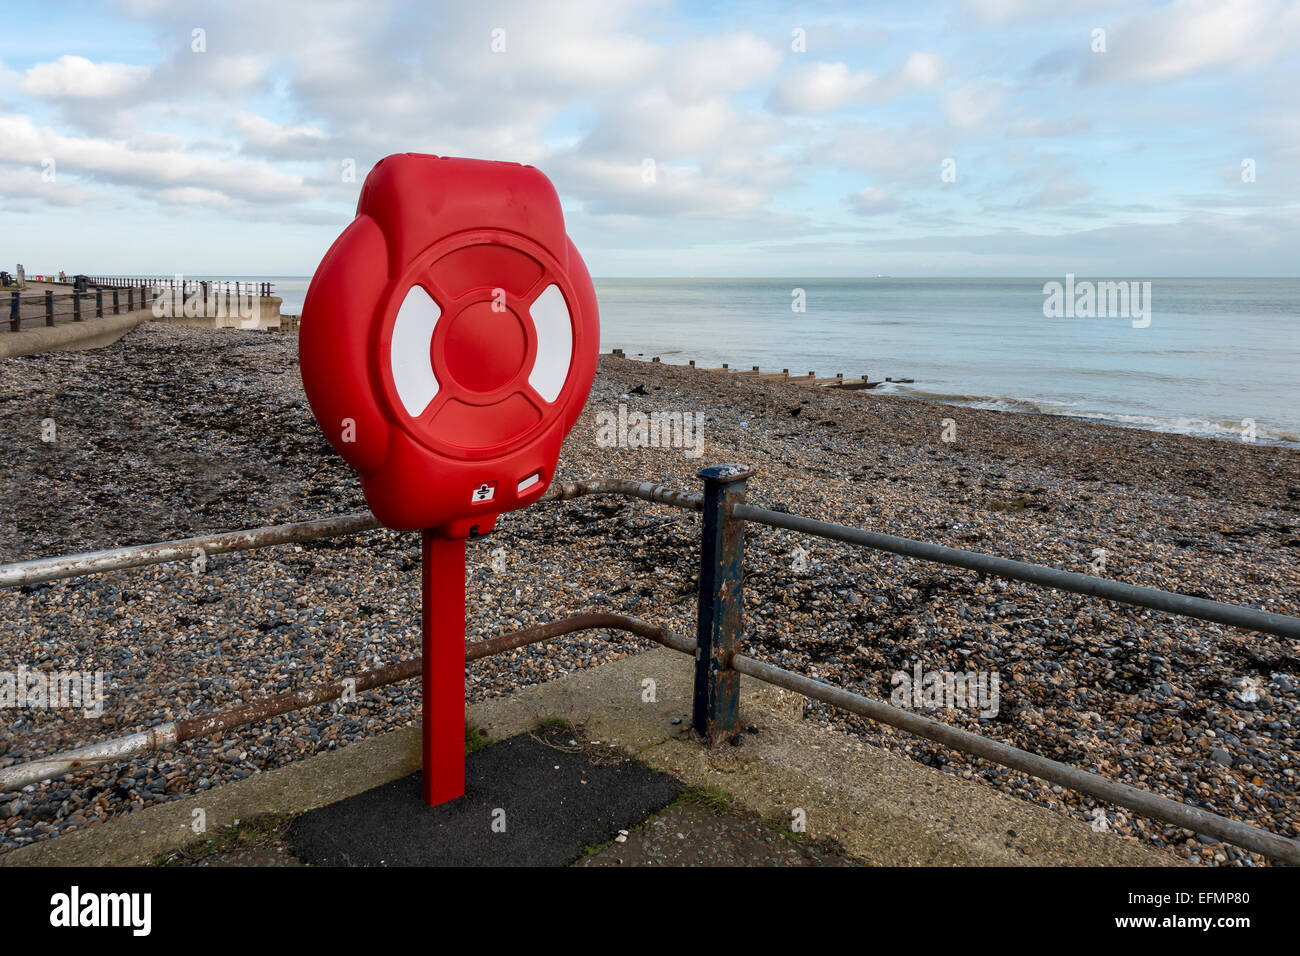 Marine Lifebelt Station Beach - Stock Image